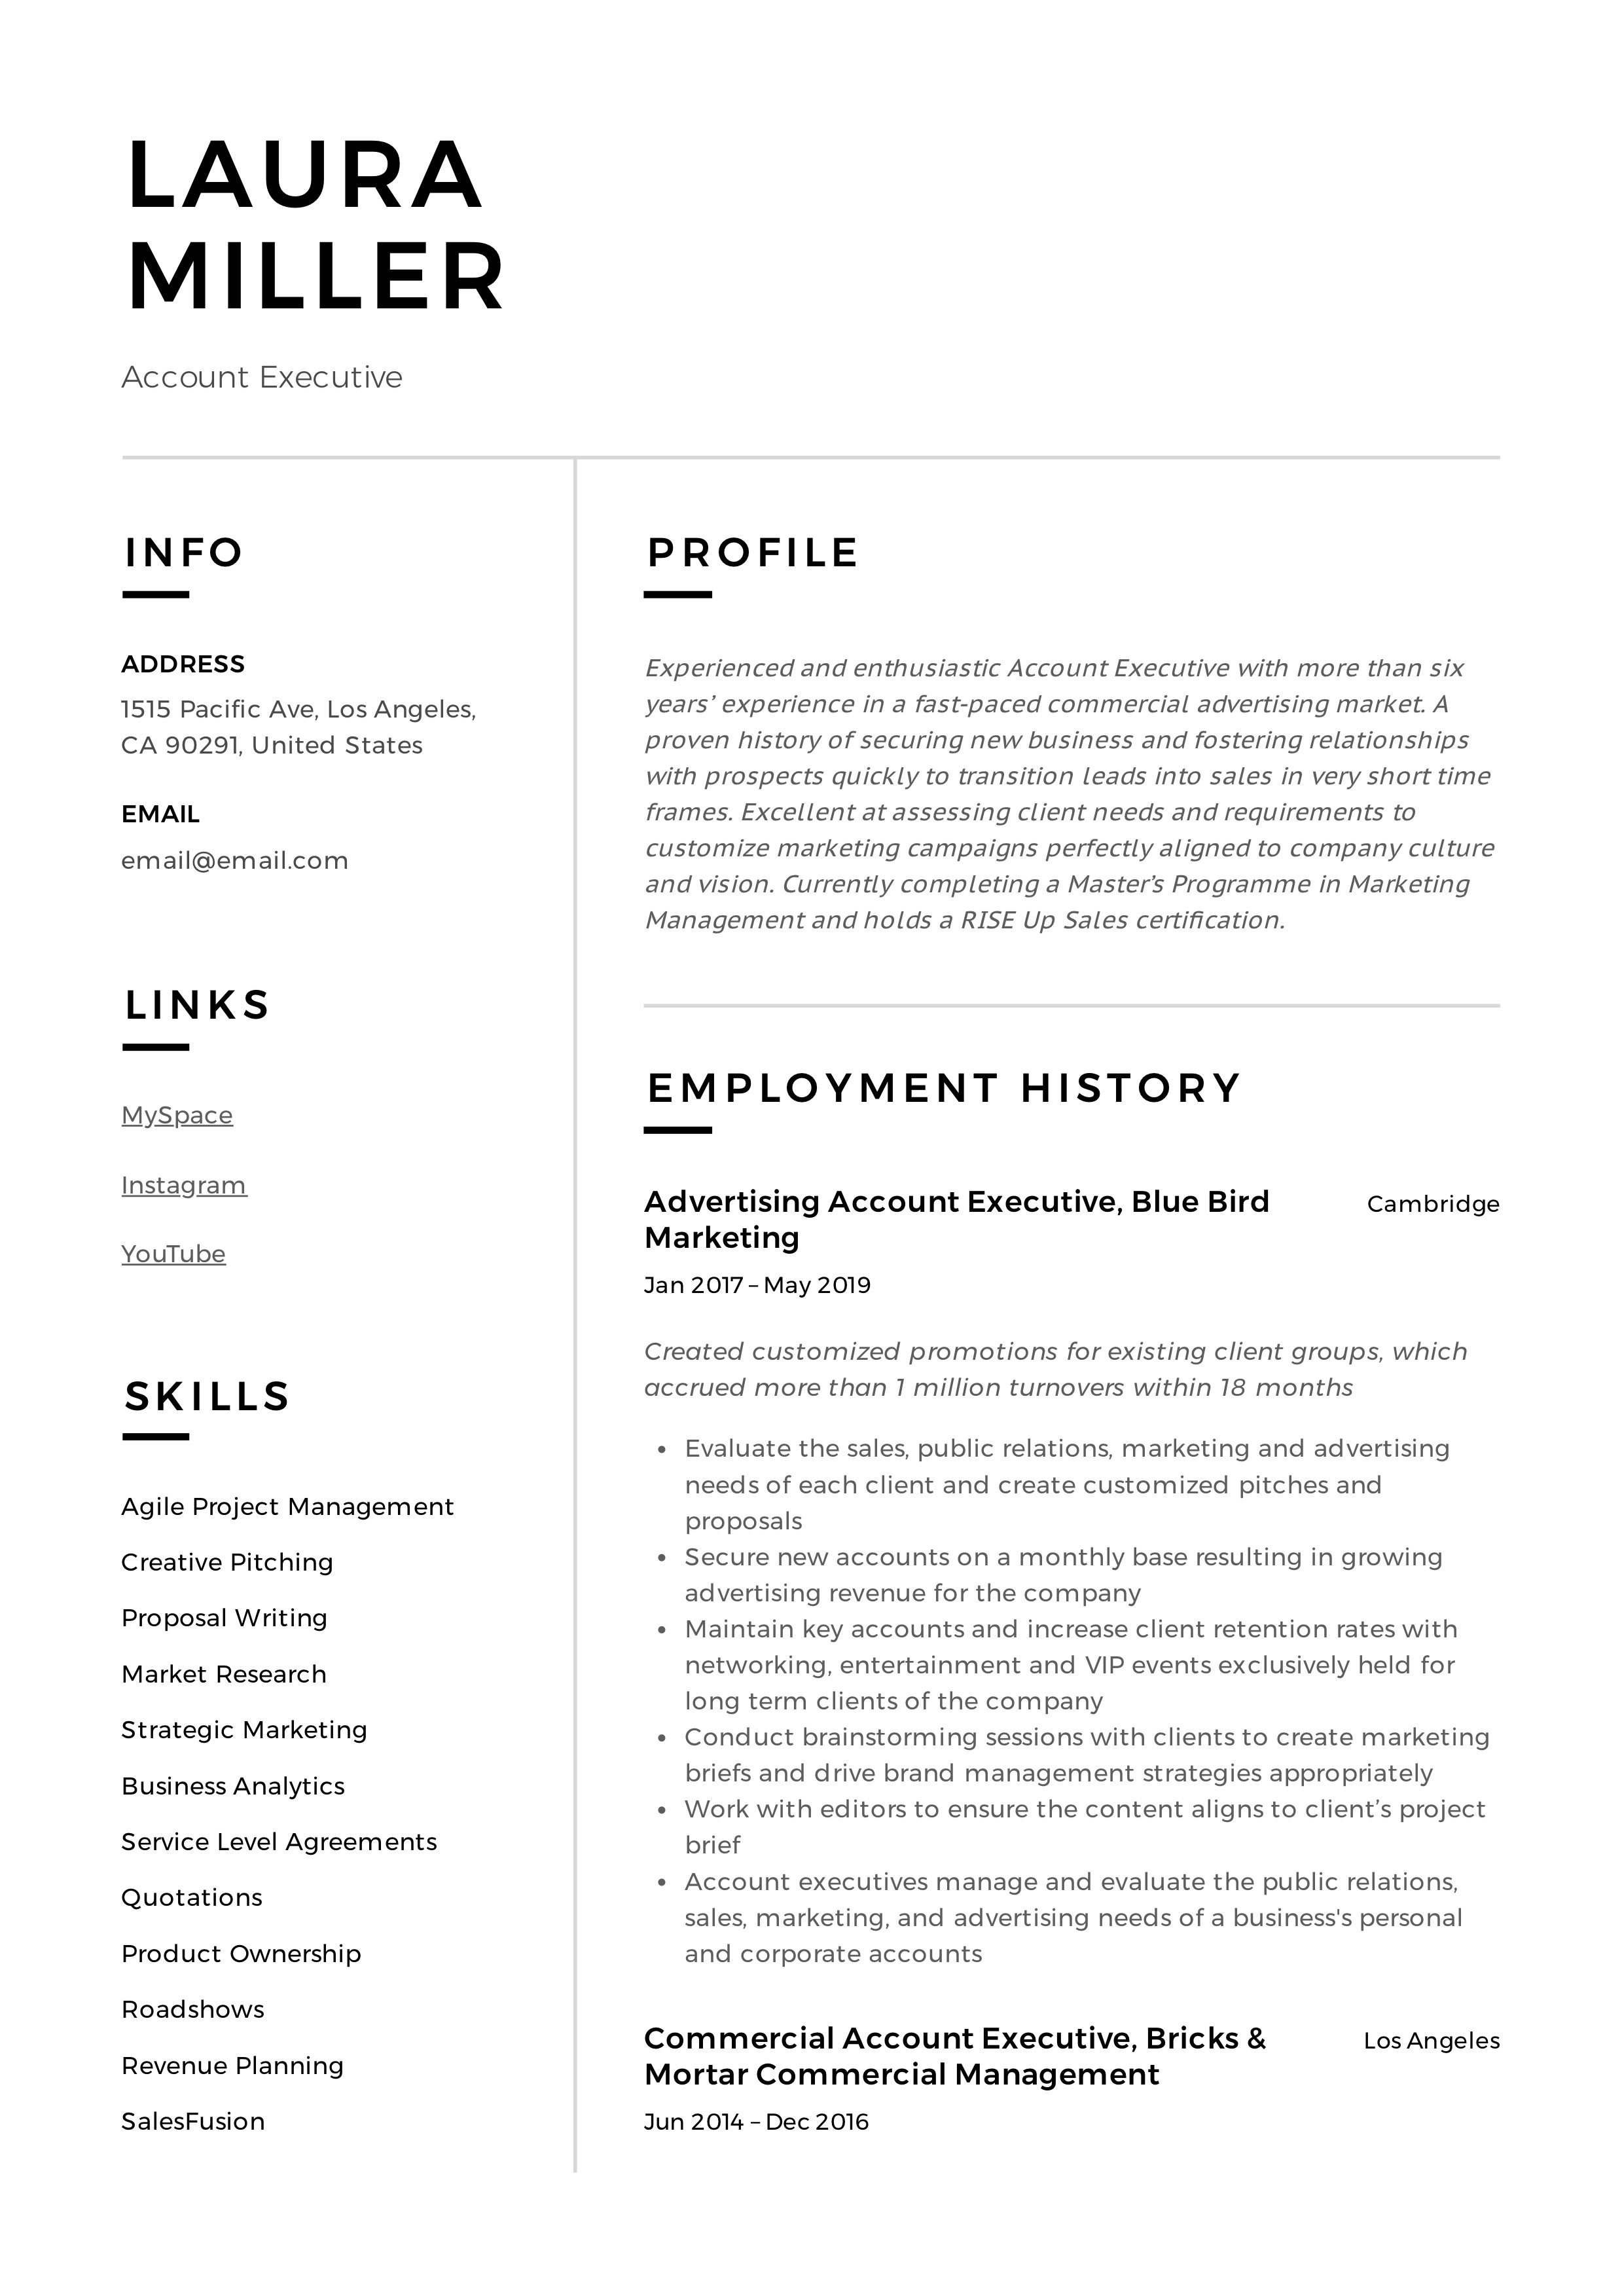 Account Executive Resume & Writing Guide | +12 TEMPLATES ...